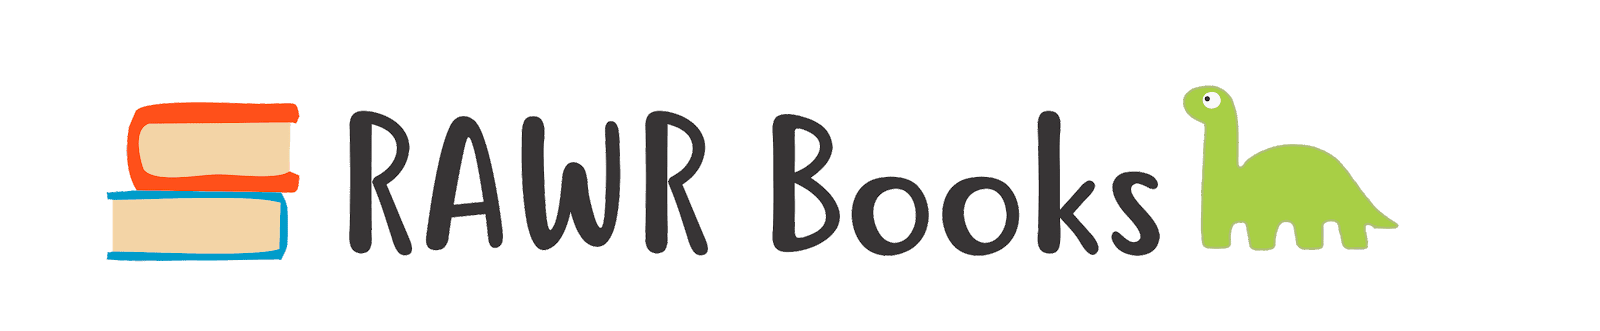 RAWR Books Blog